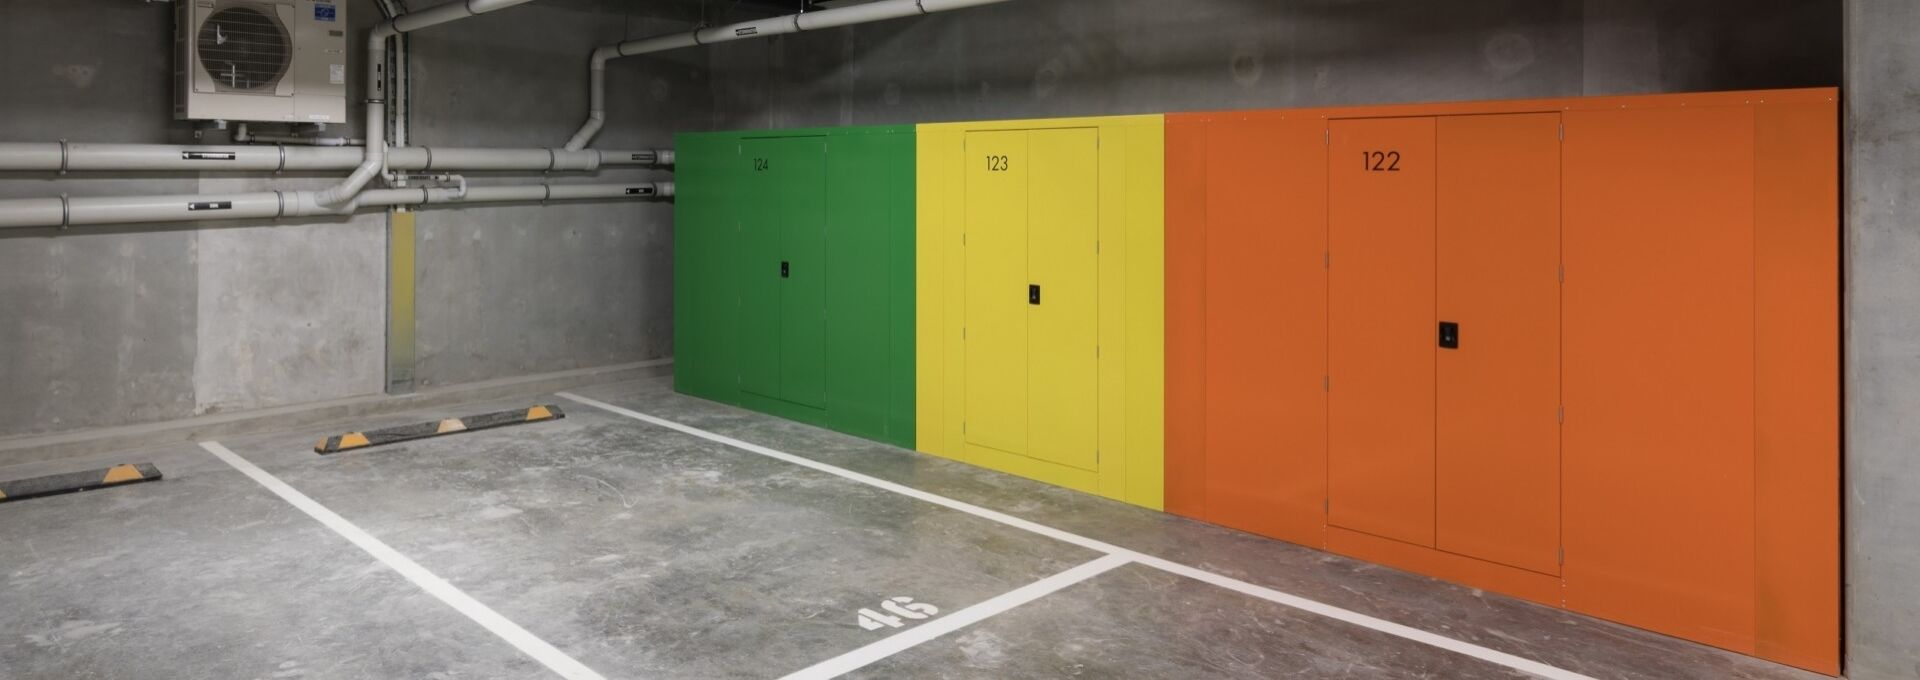 projects_st_marks_lockers_4